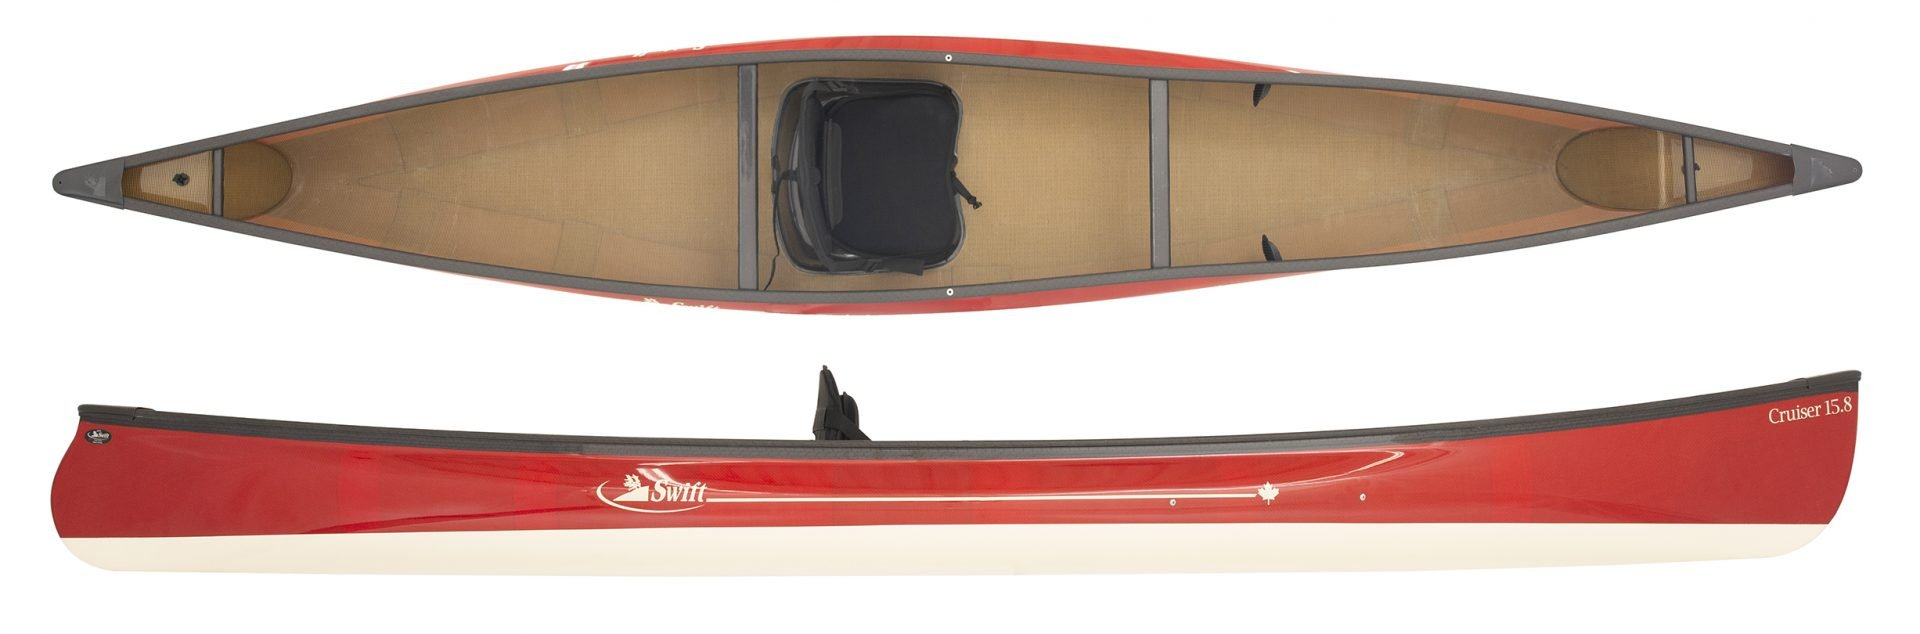 Swift Cruiser 15.8 Pack